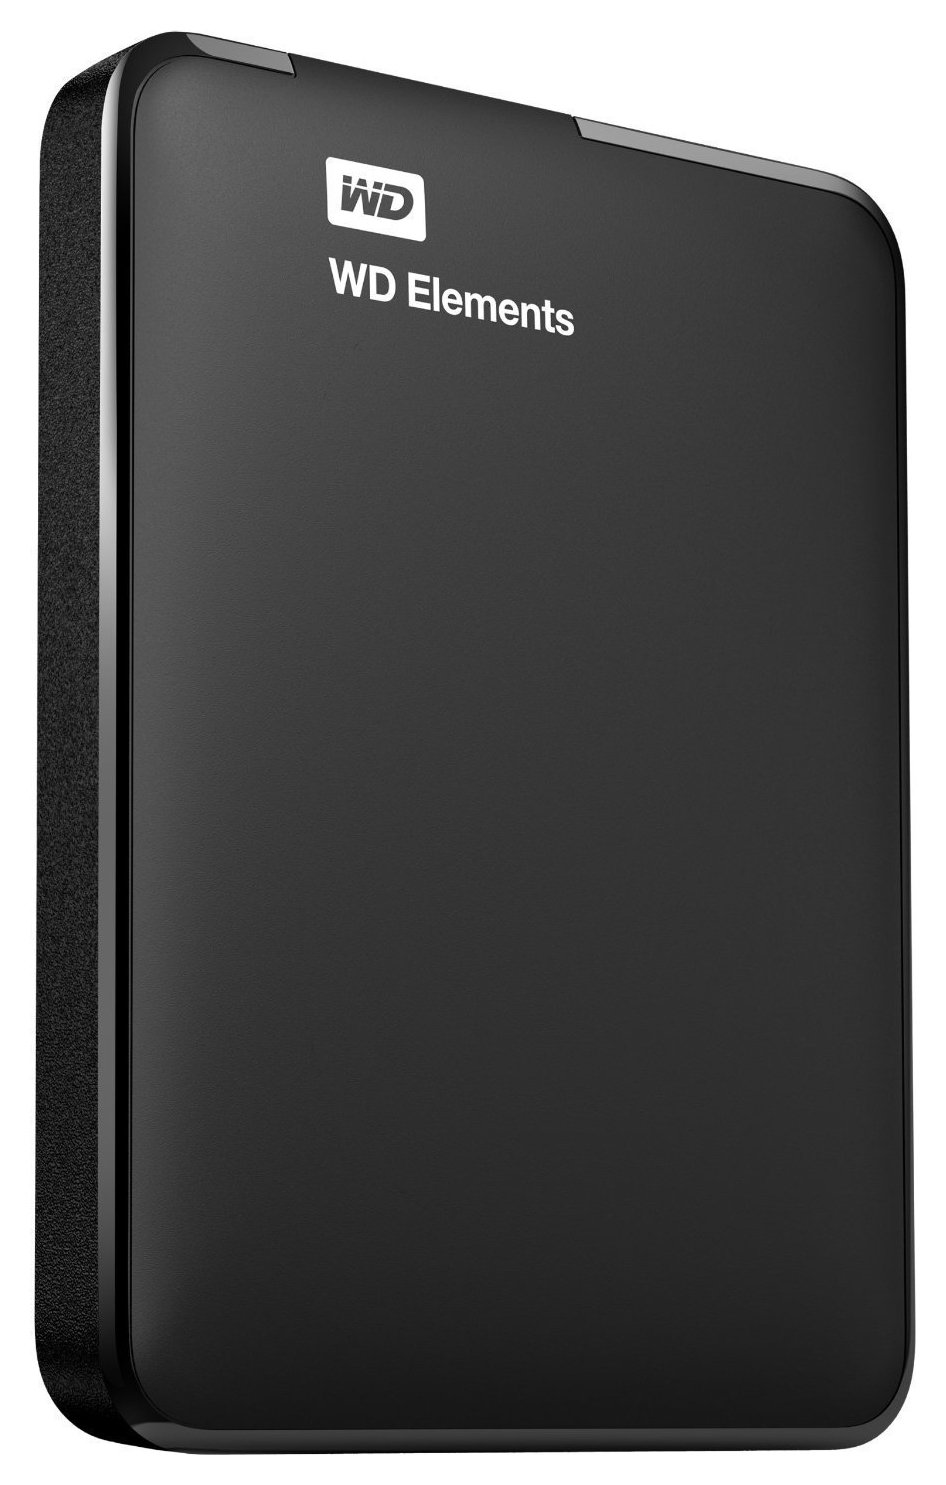 wd-elements-3tb-emea-portable-hard-drive-black